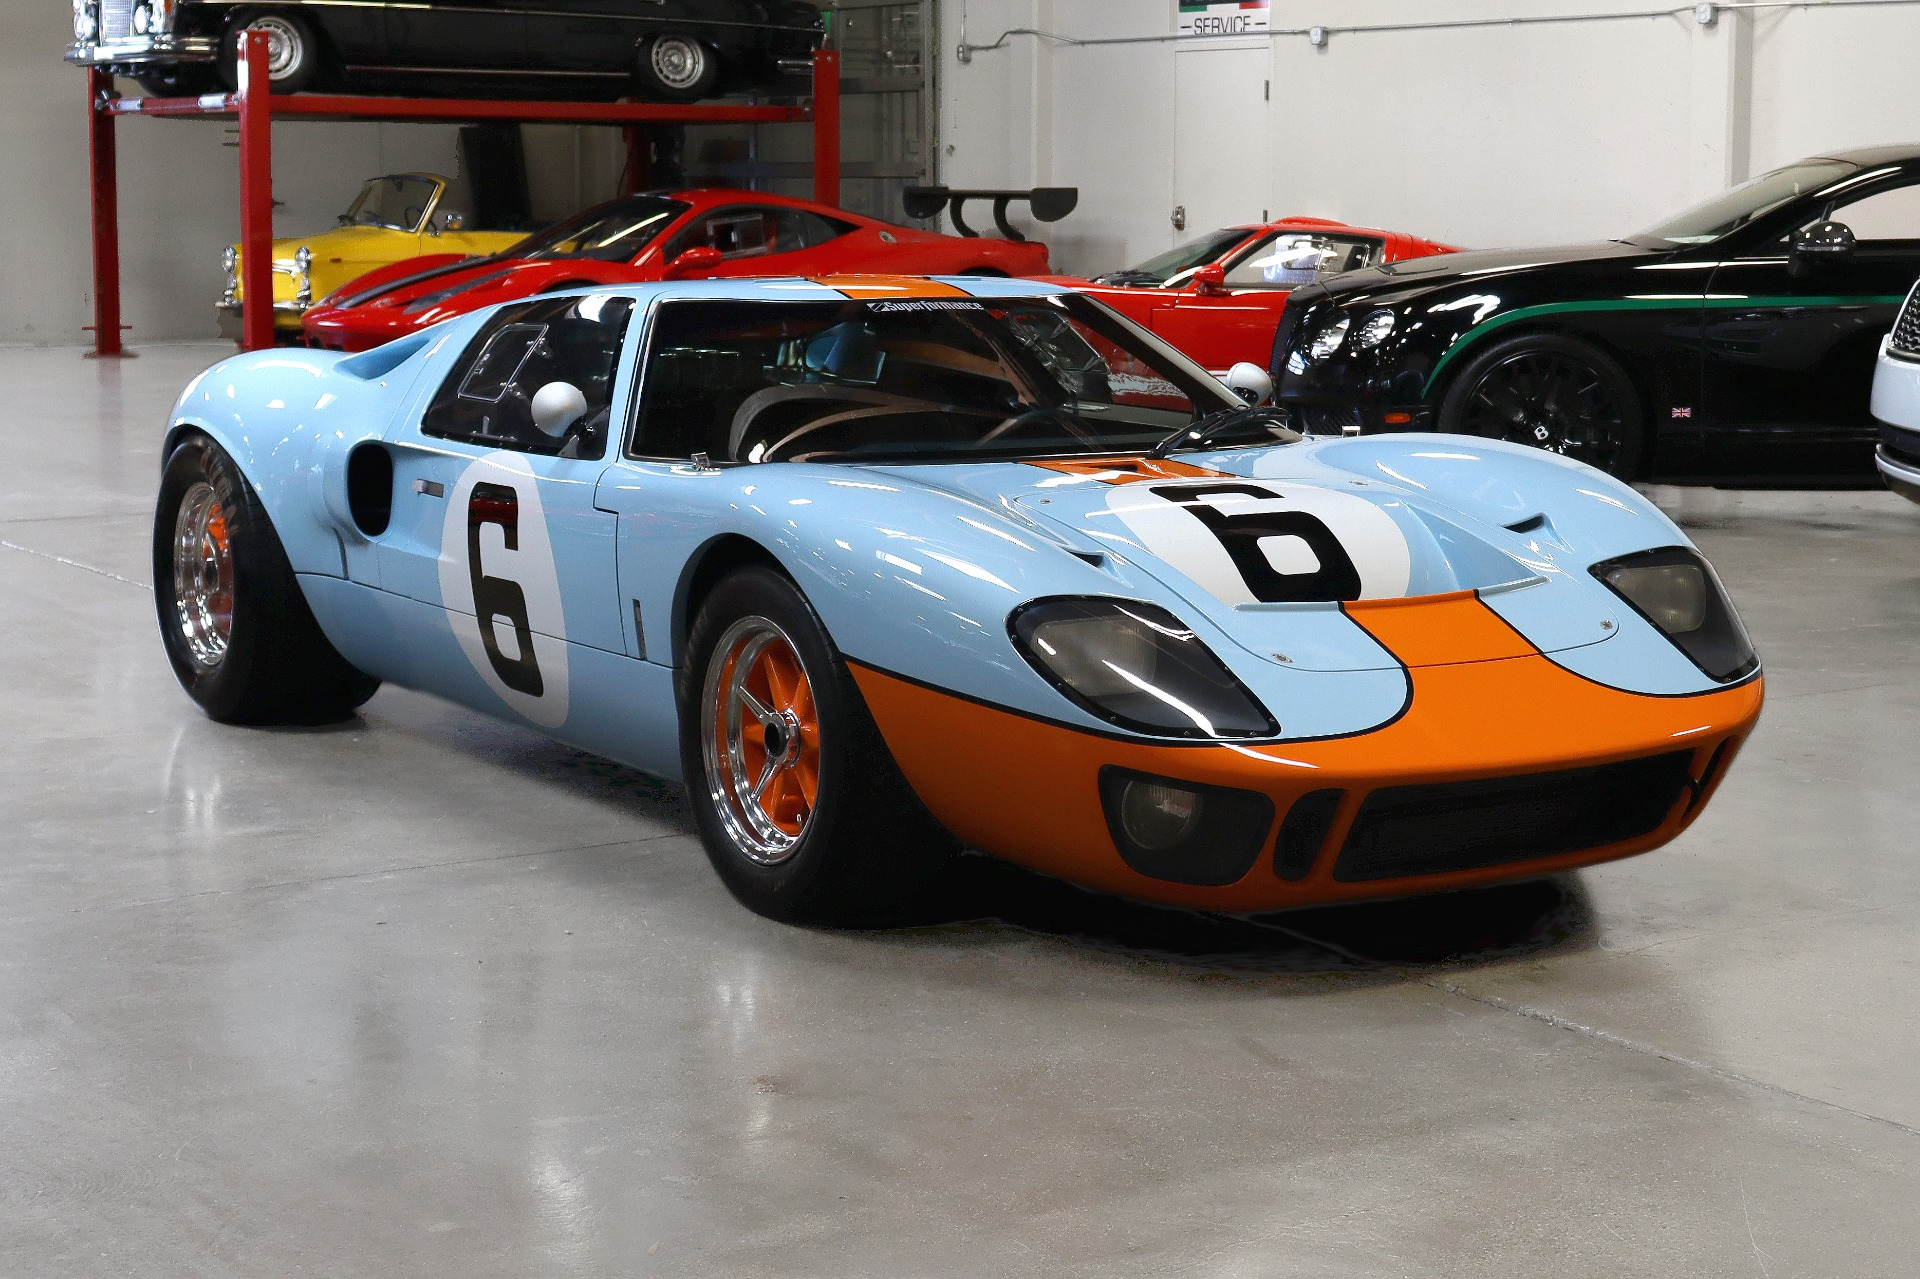 Used 1965 Superformance GT40 MKI Wide body for sale Sold at San Francisco Sports Cars in San Carlos CA 94070 1